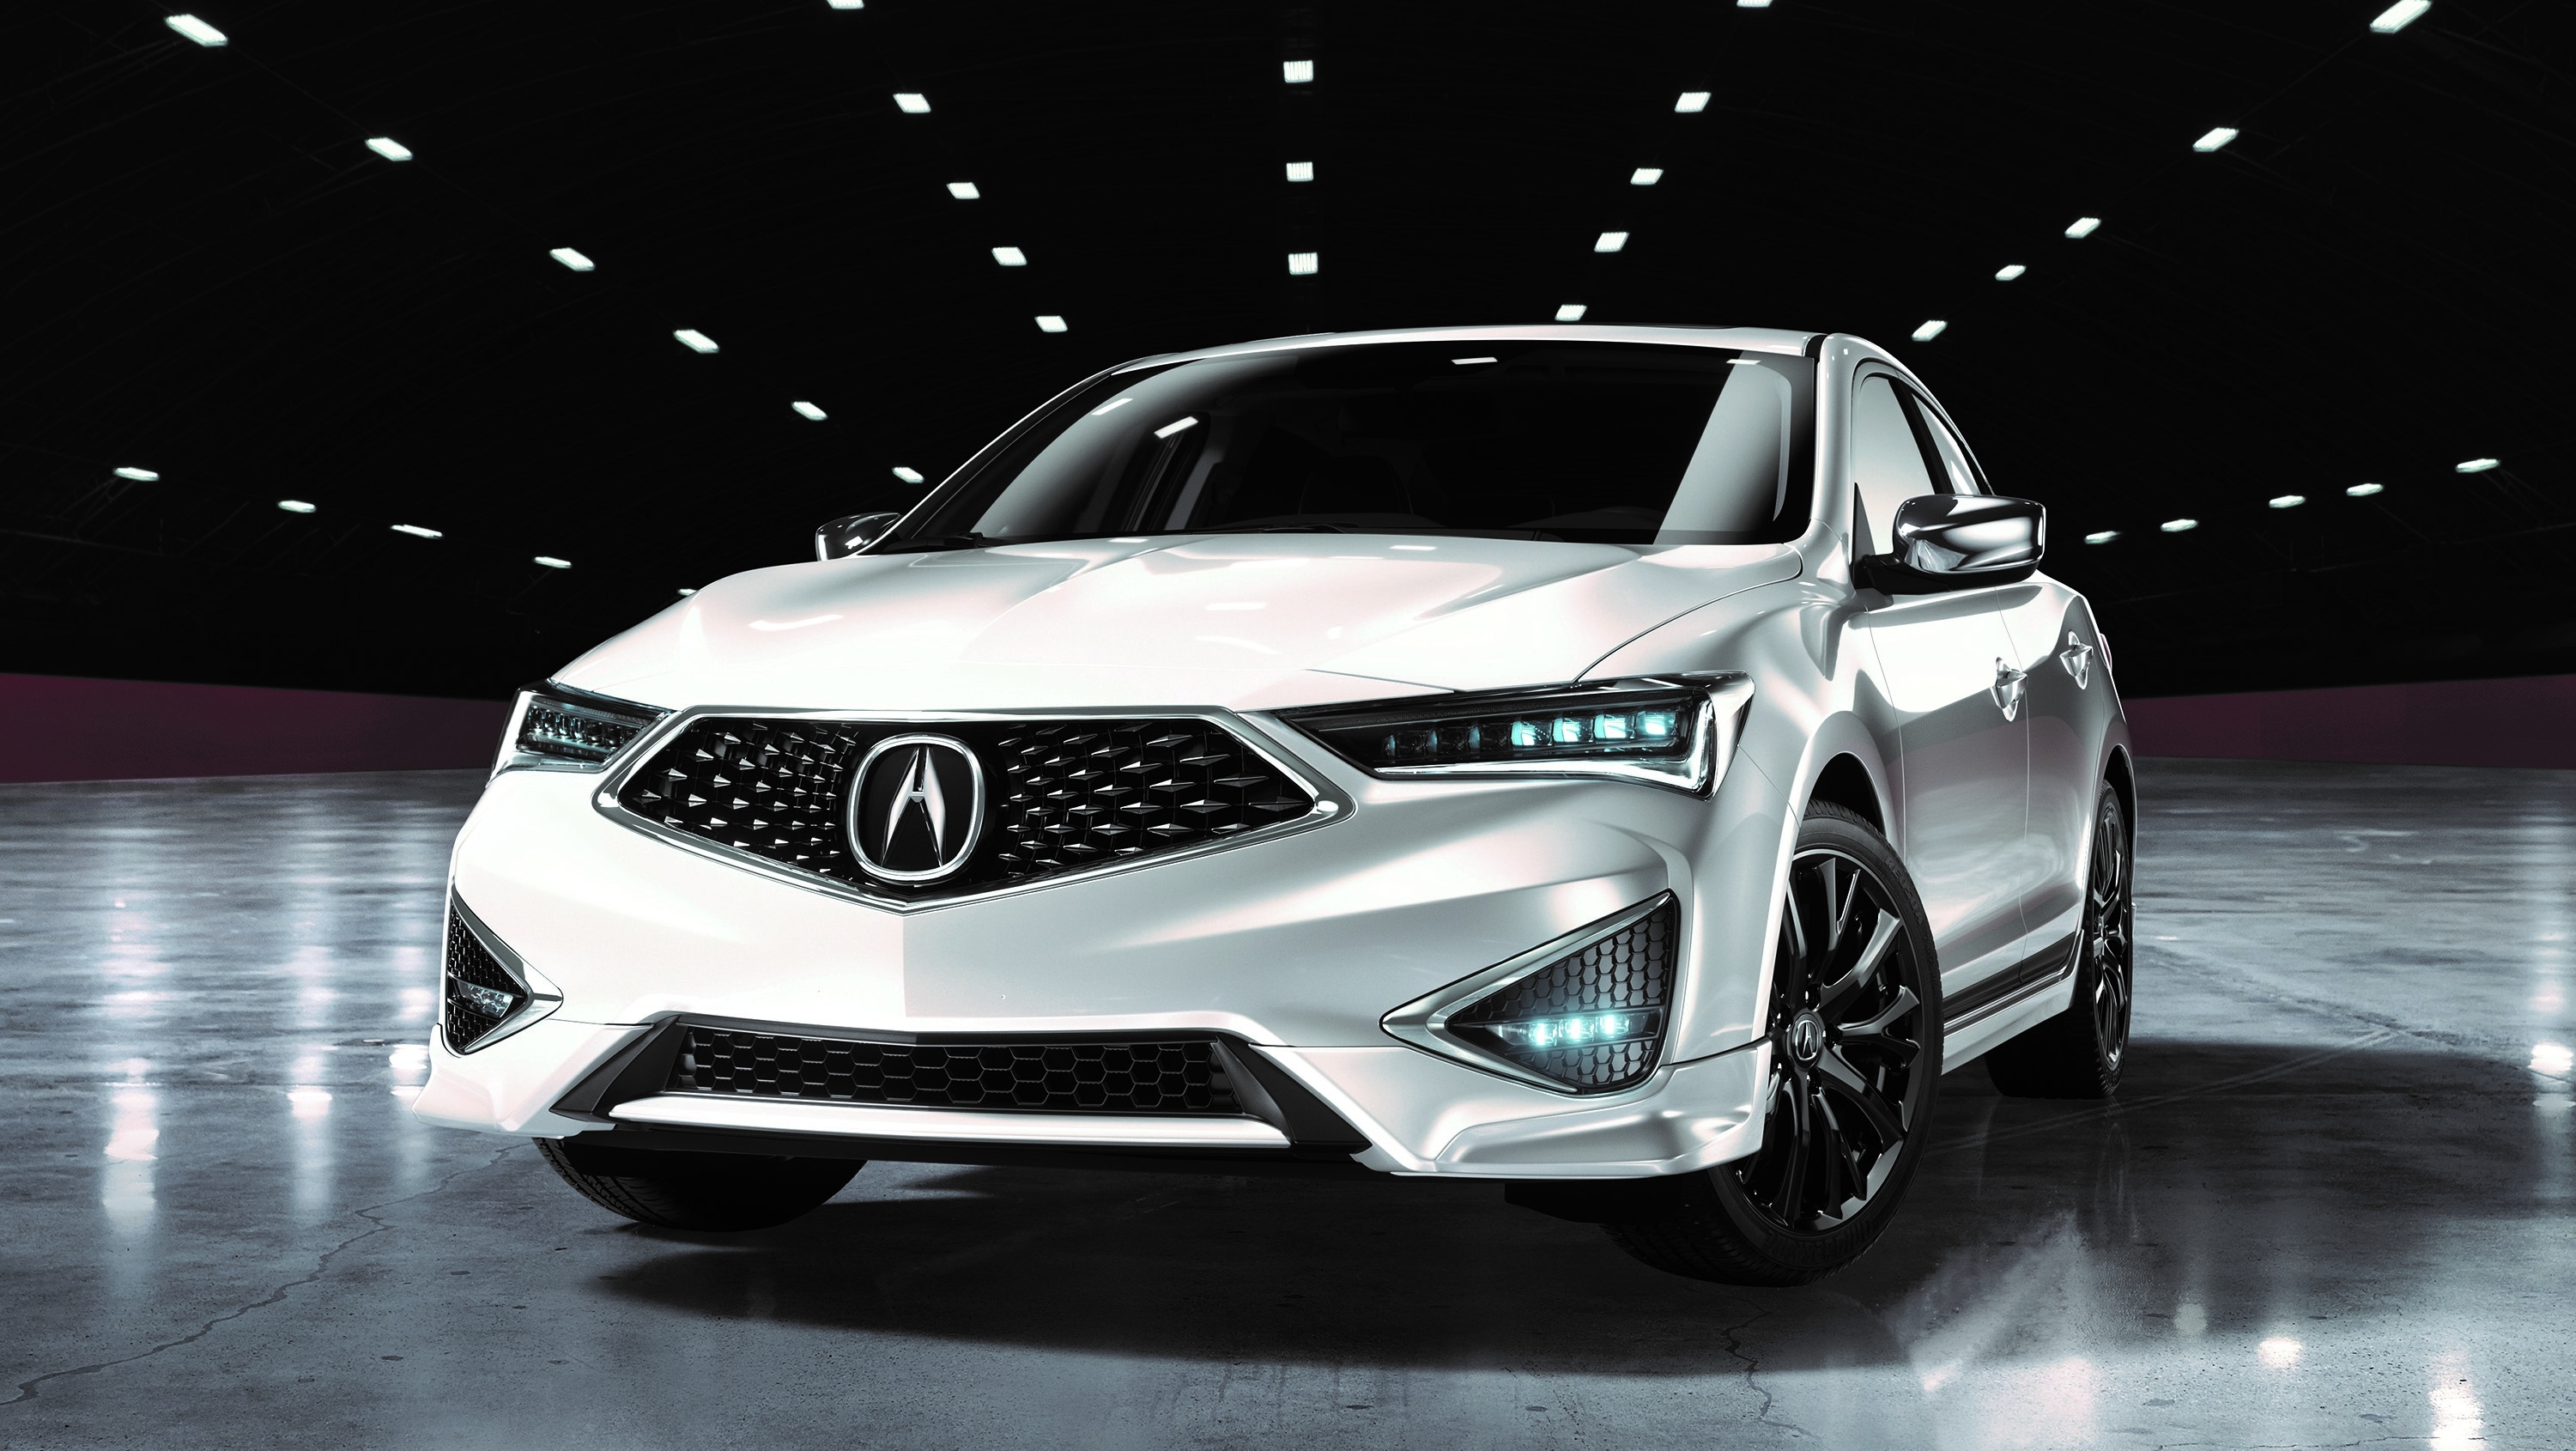 The 2019 Acura Ilx Was Showcased At Sema With Some Awesome New Accessories Pictures Photos Wallpapers Top Speed